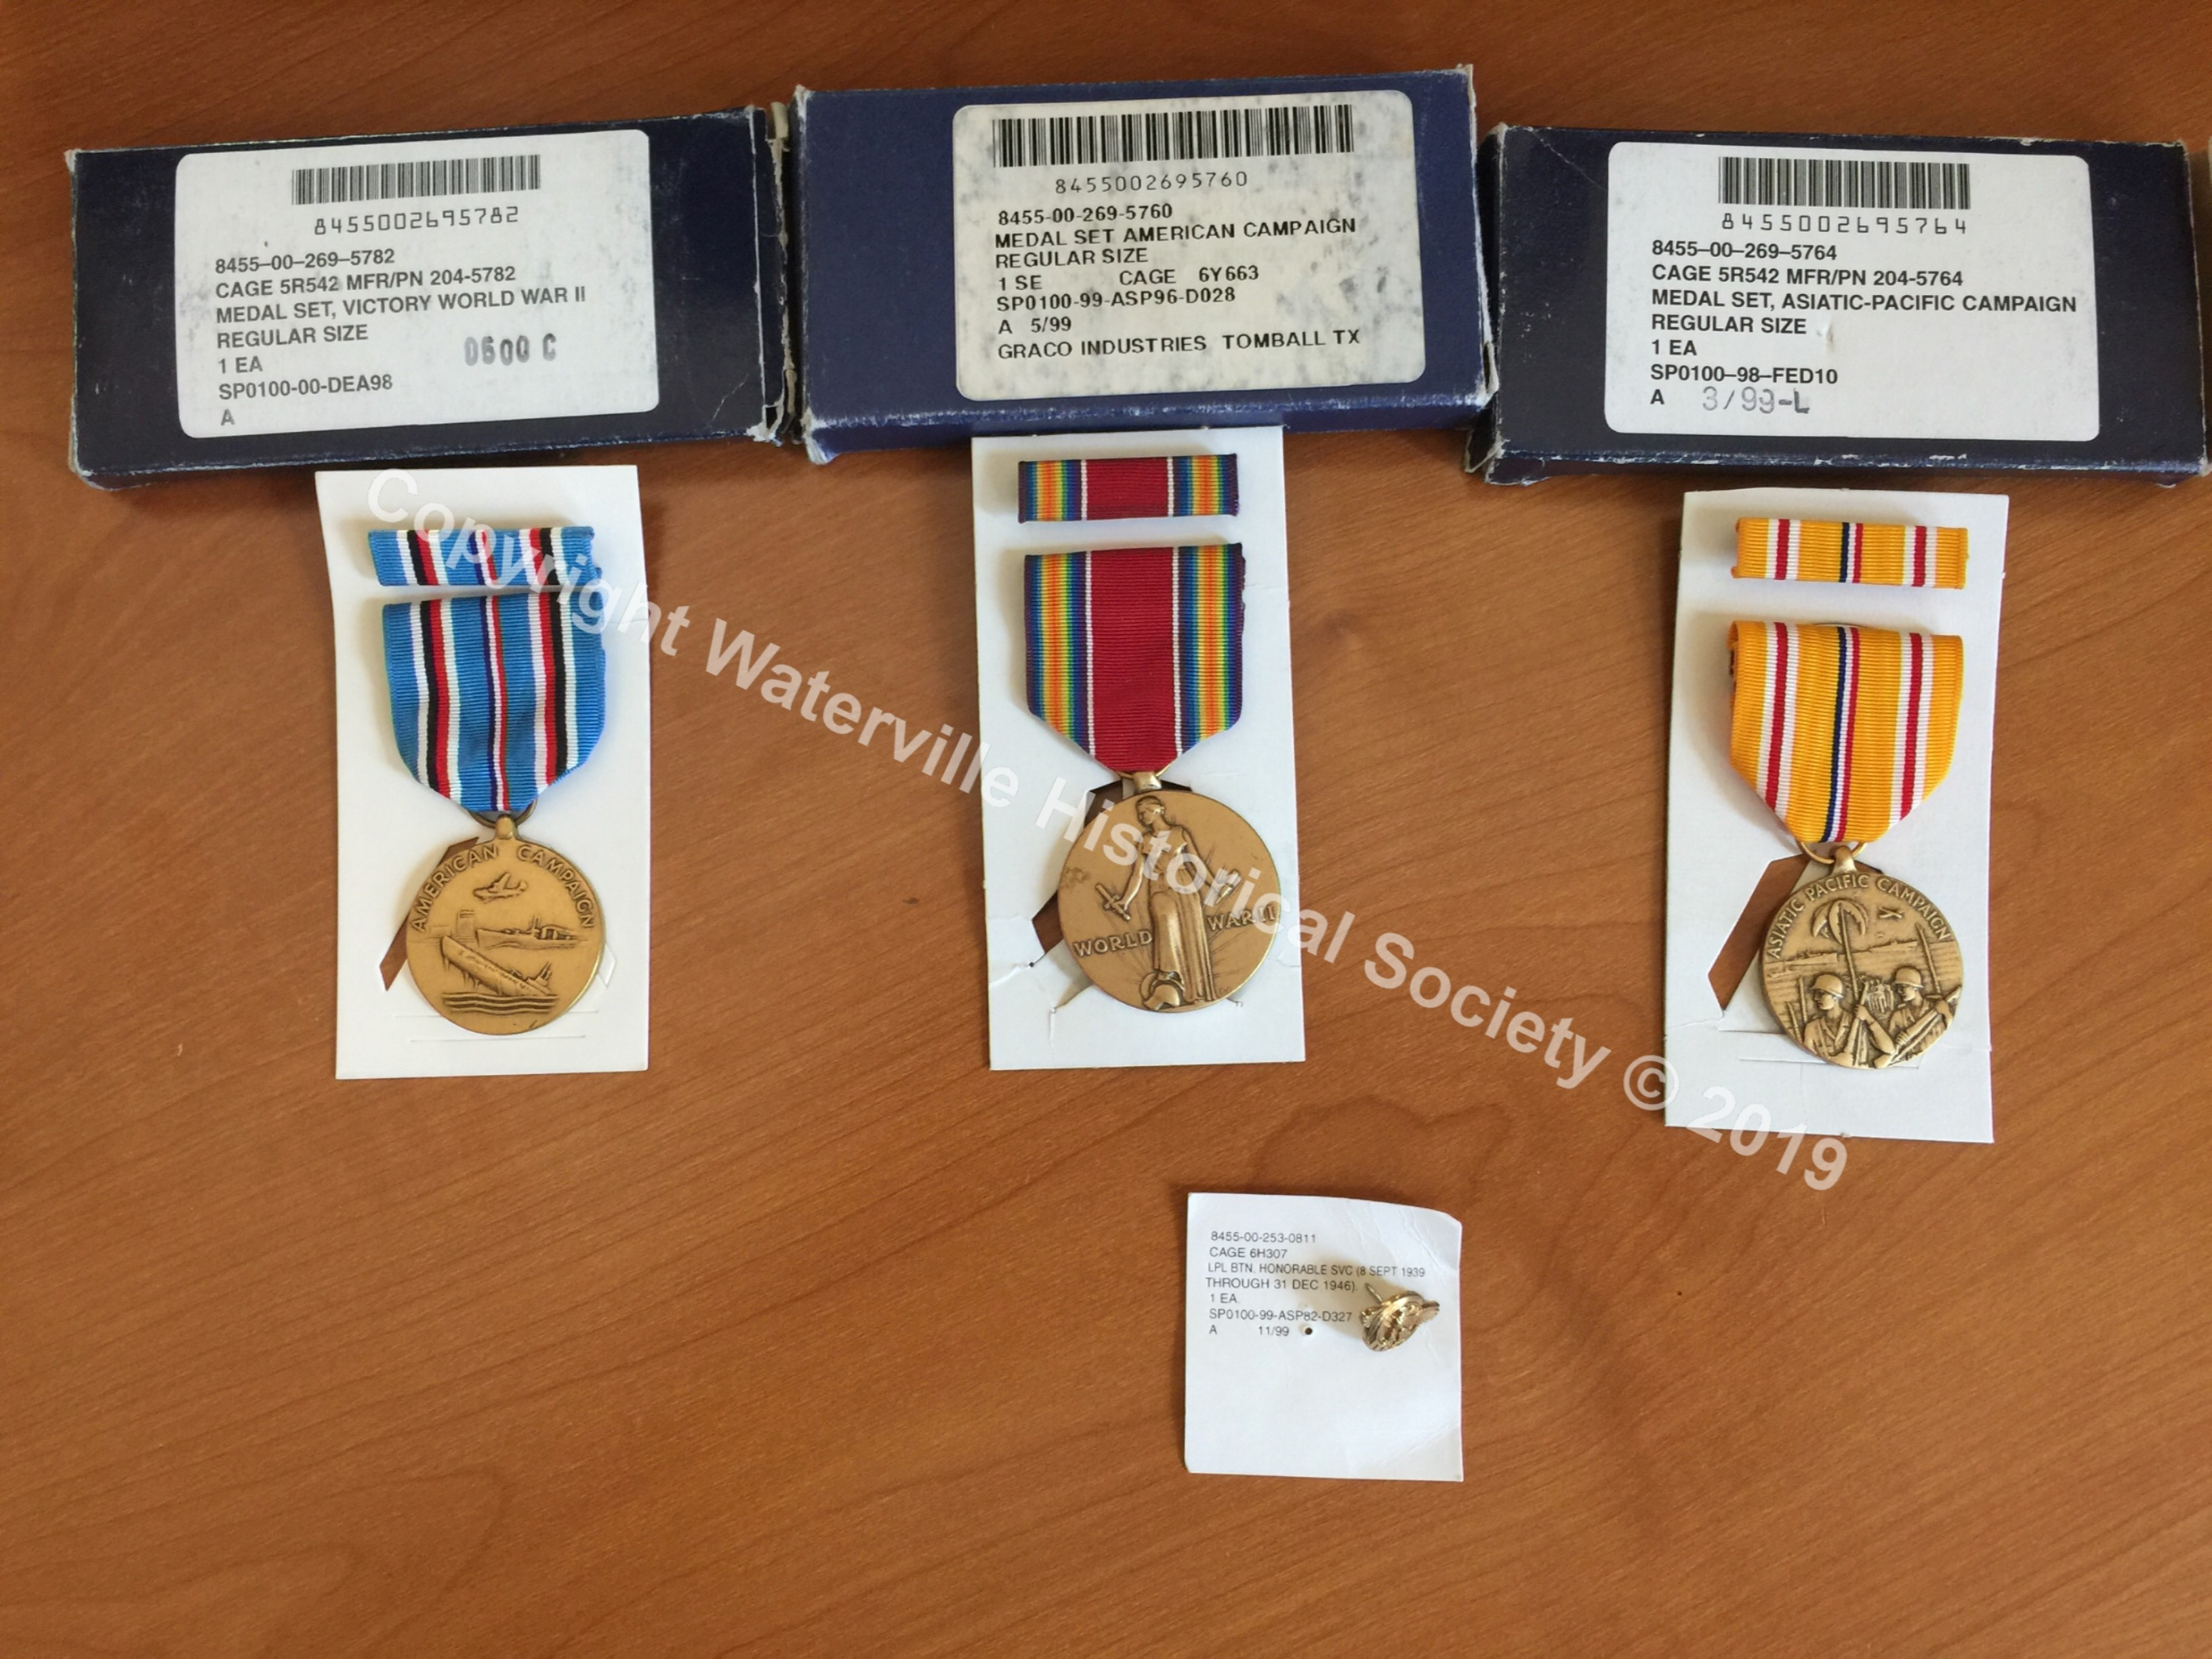 Alcee Vigue Campaign Medals WWII